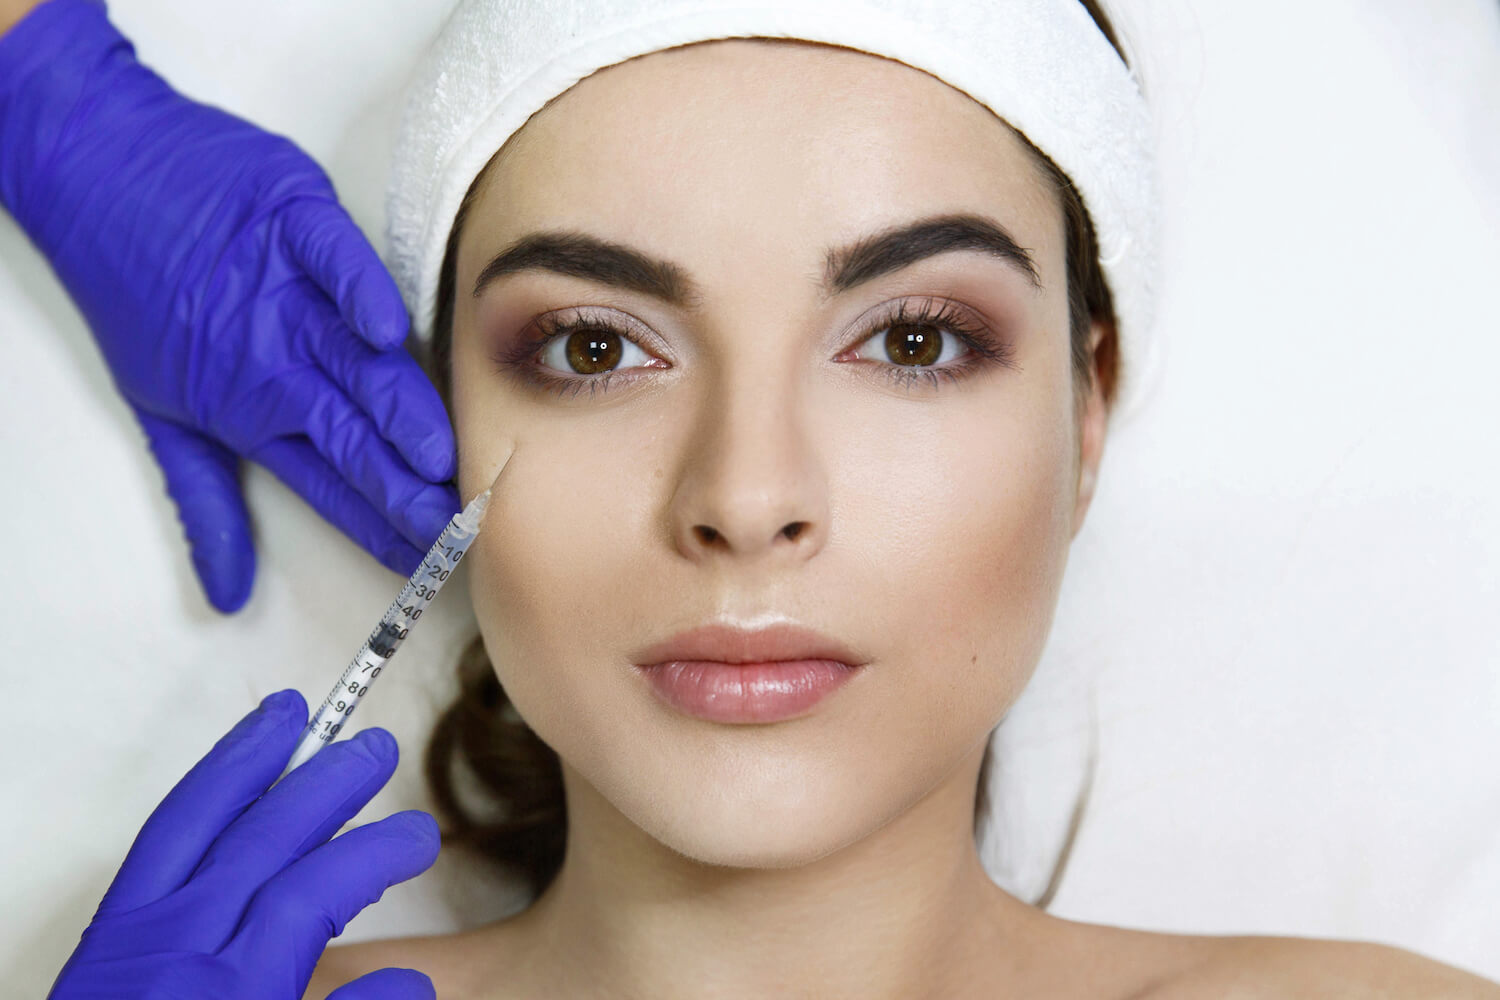 woman receiving botox injection, med spa service